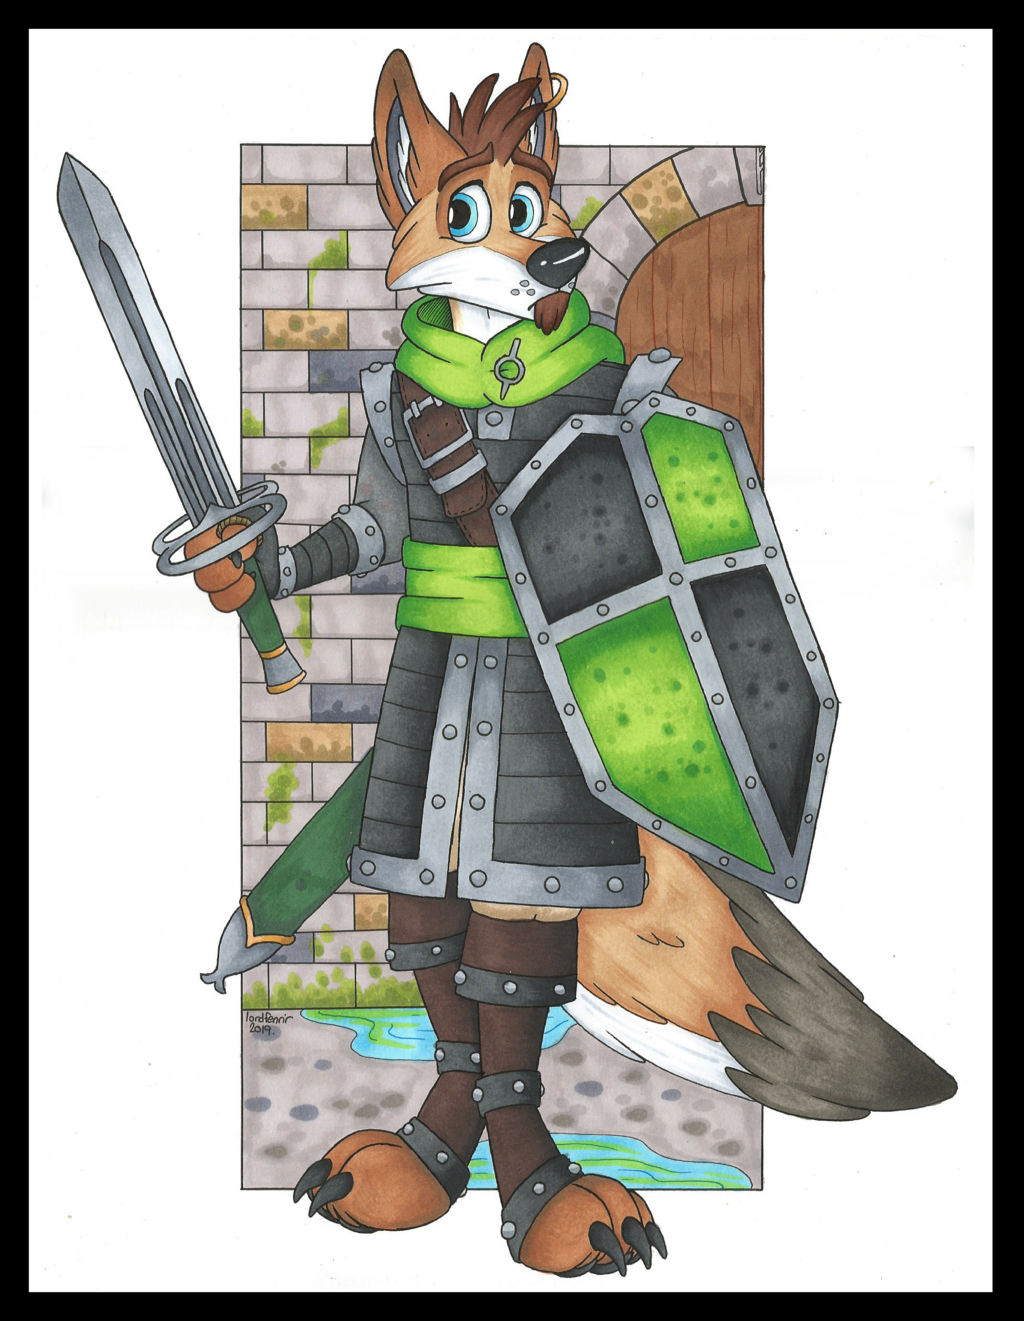 Most recent image: Sir Samuel, Coyote Paladin